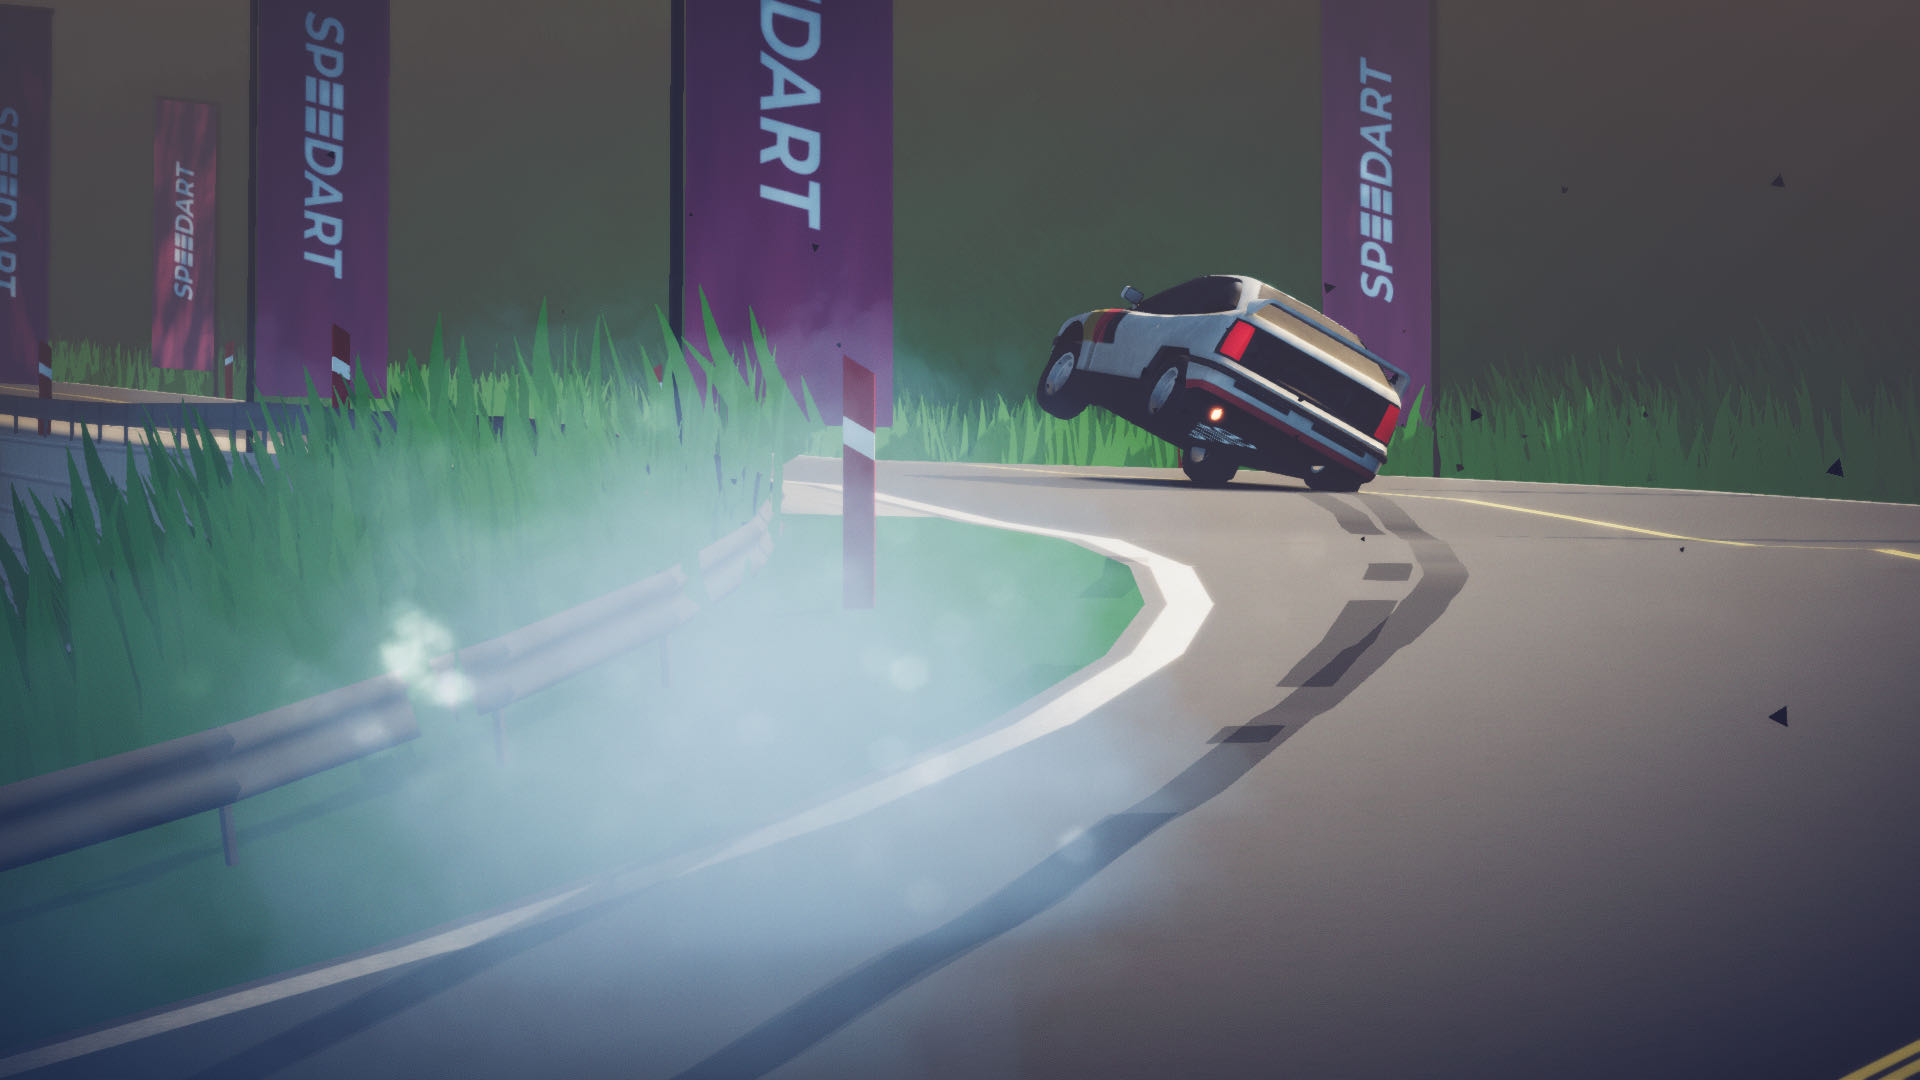 A screenshot from Art of Rally, your car screeching around a turn on two wheels.